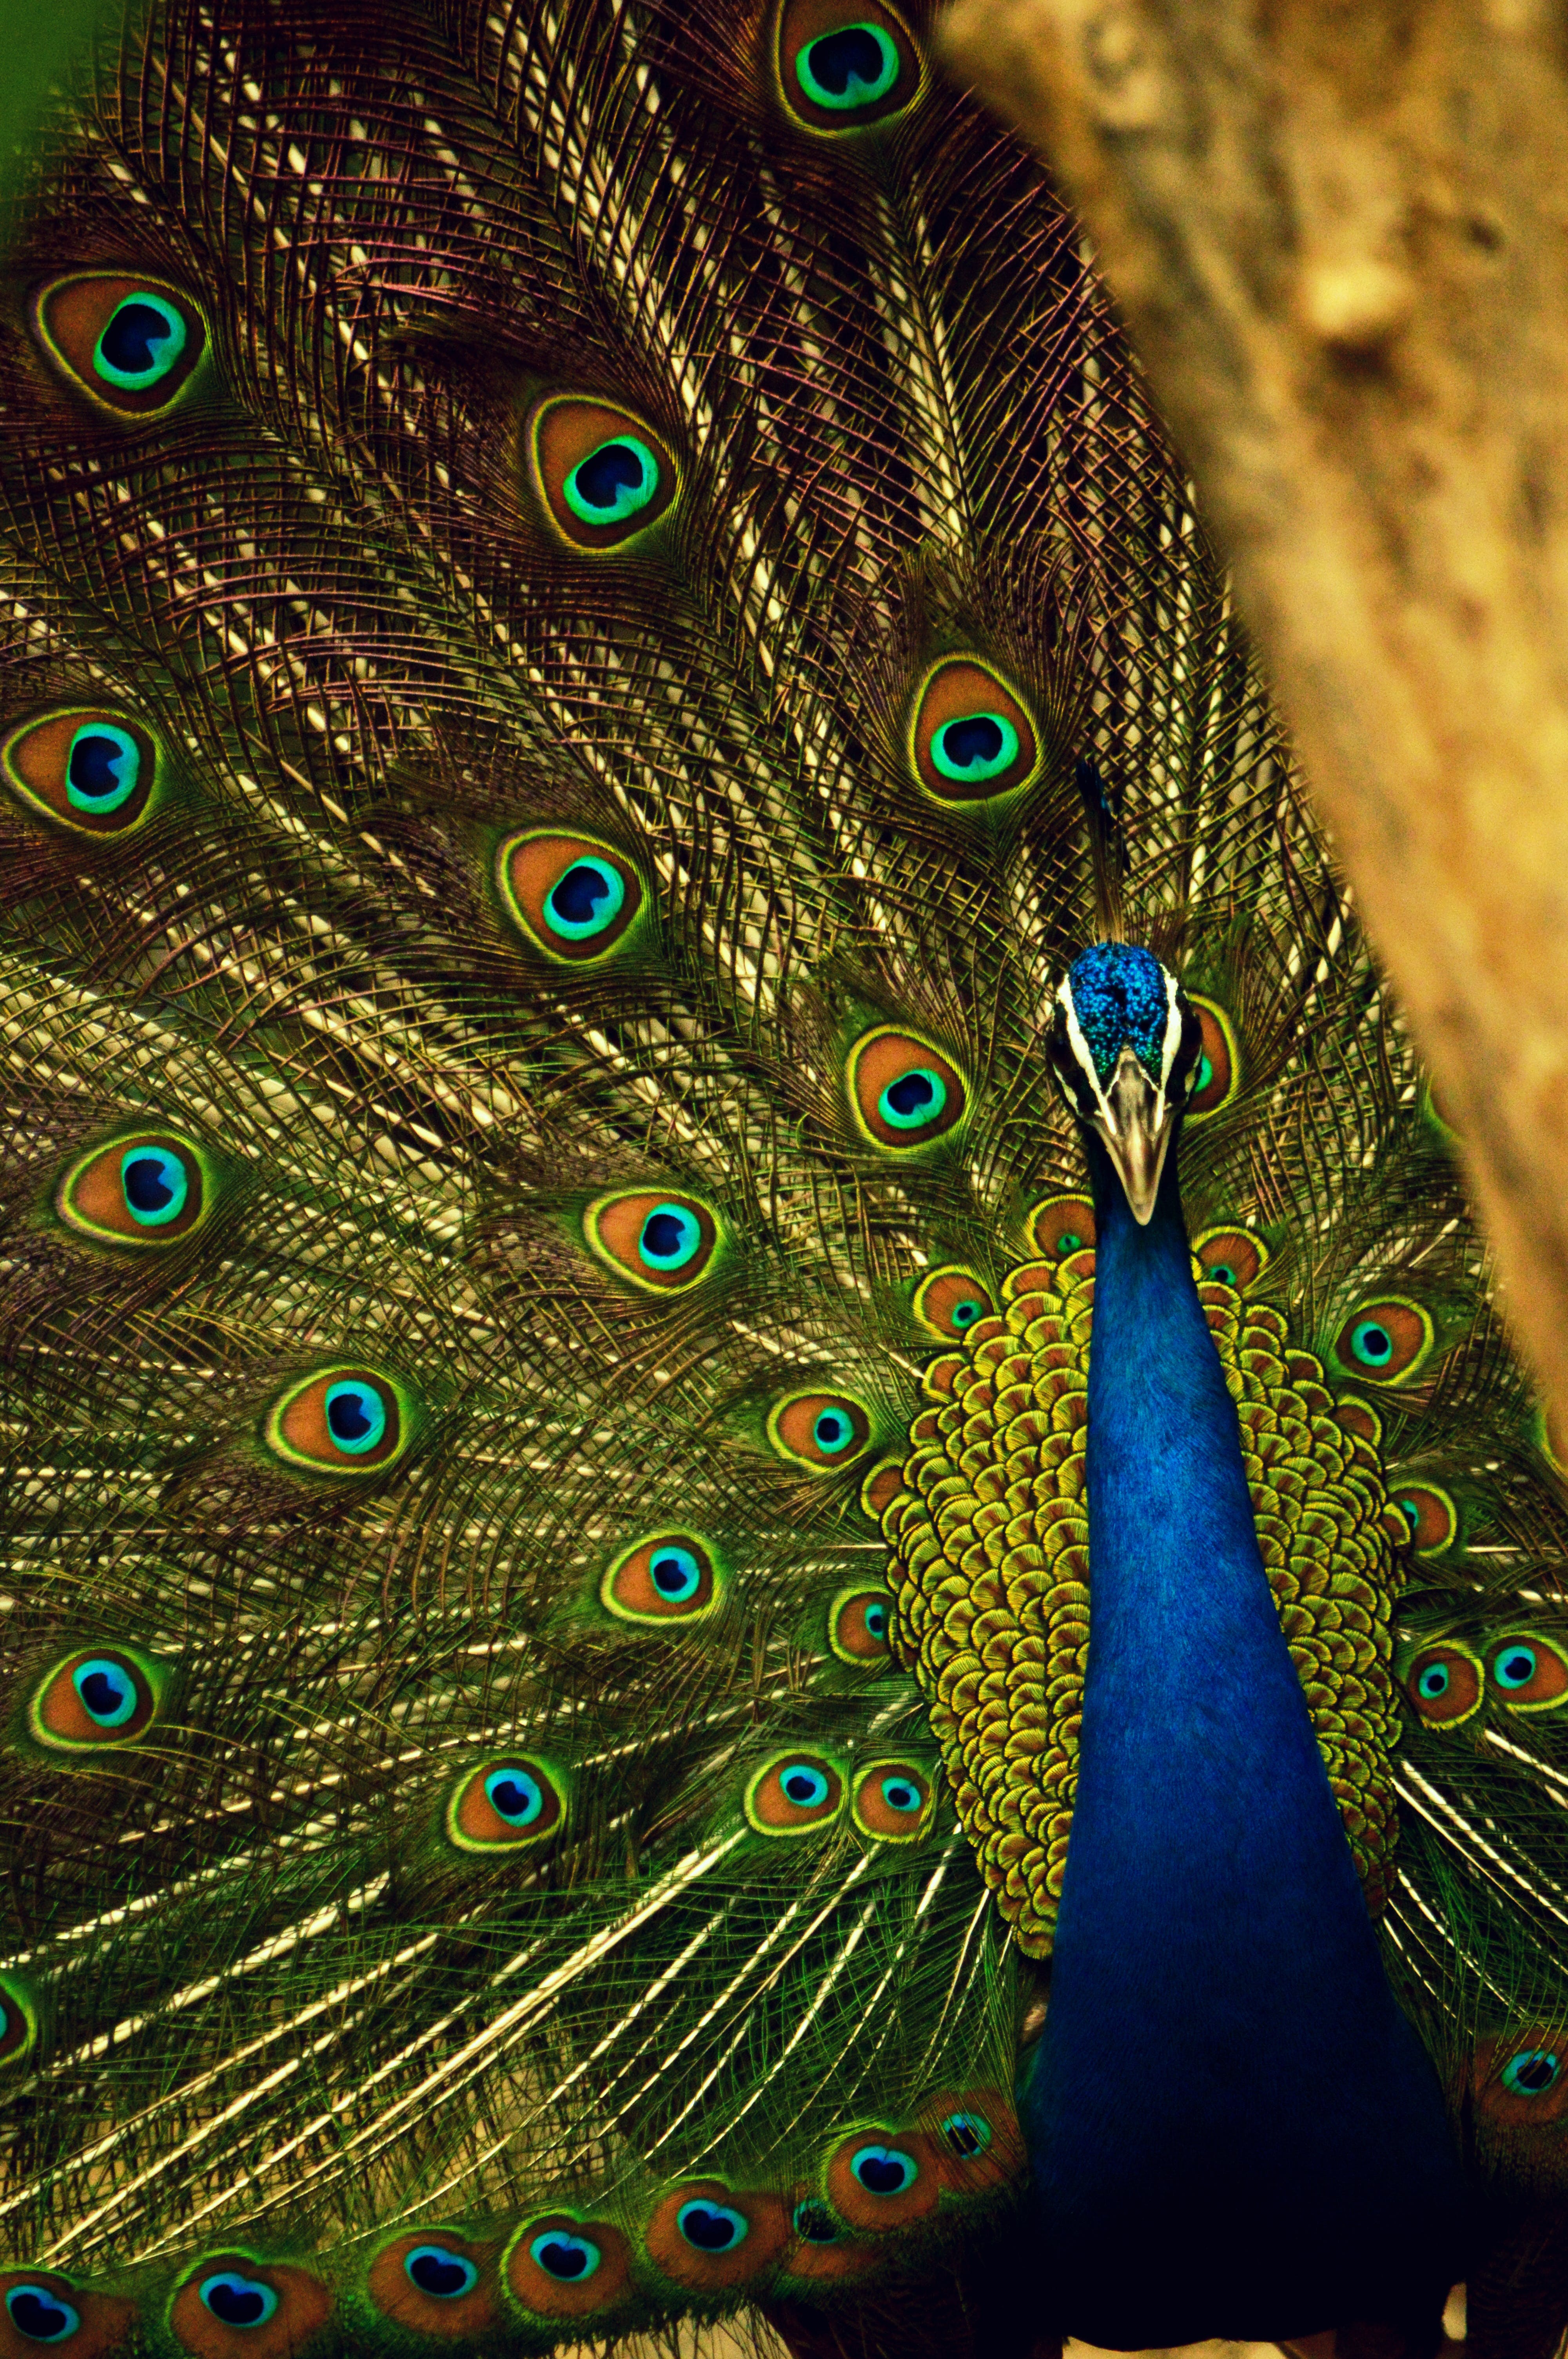 Blue and Green Peafowl